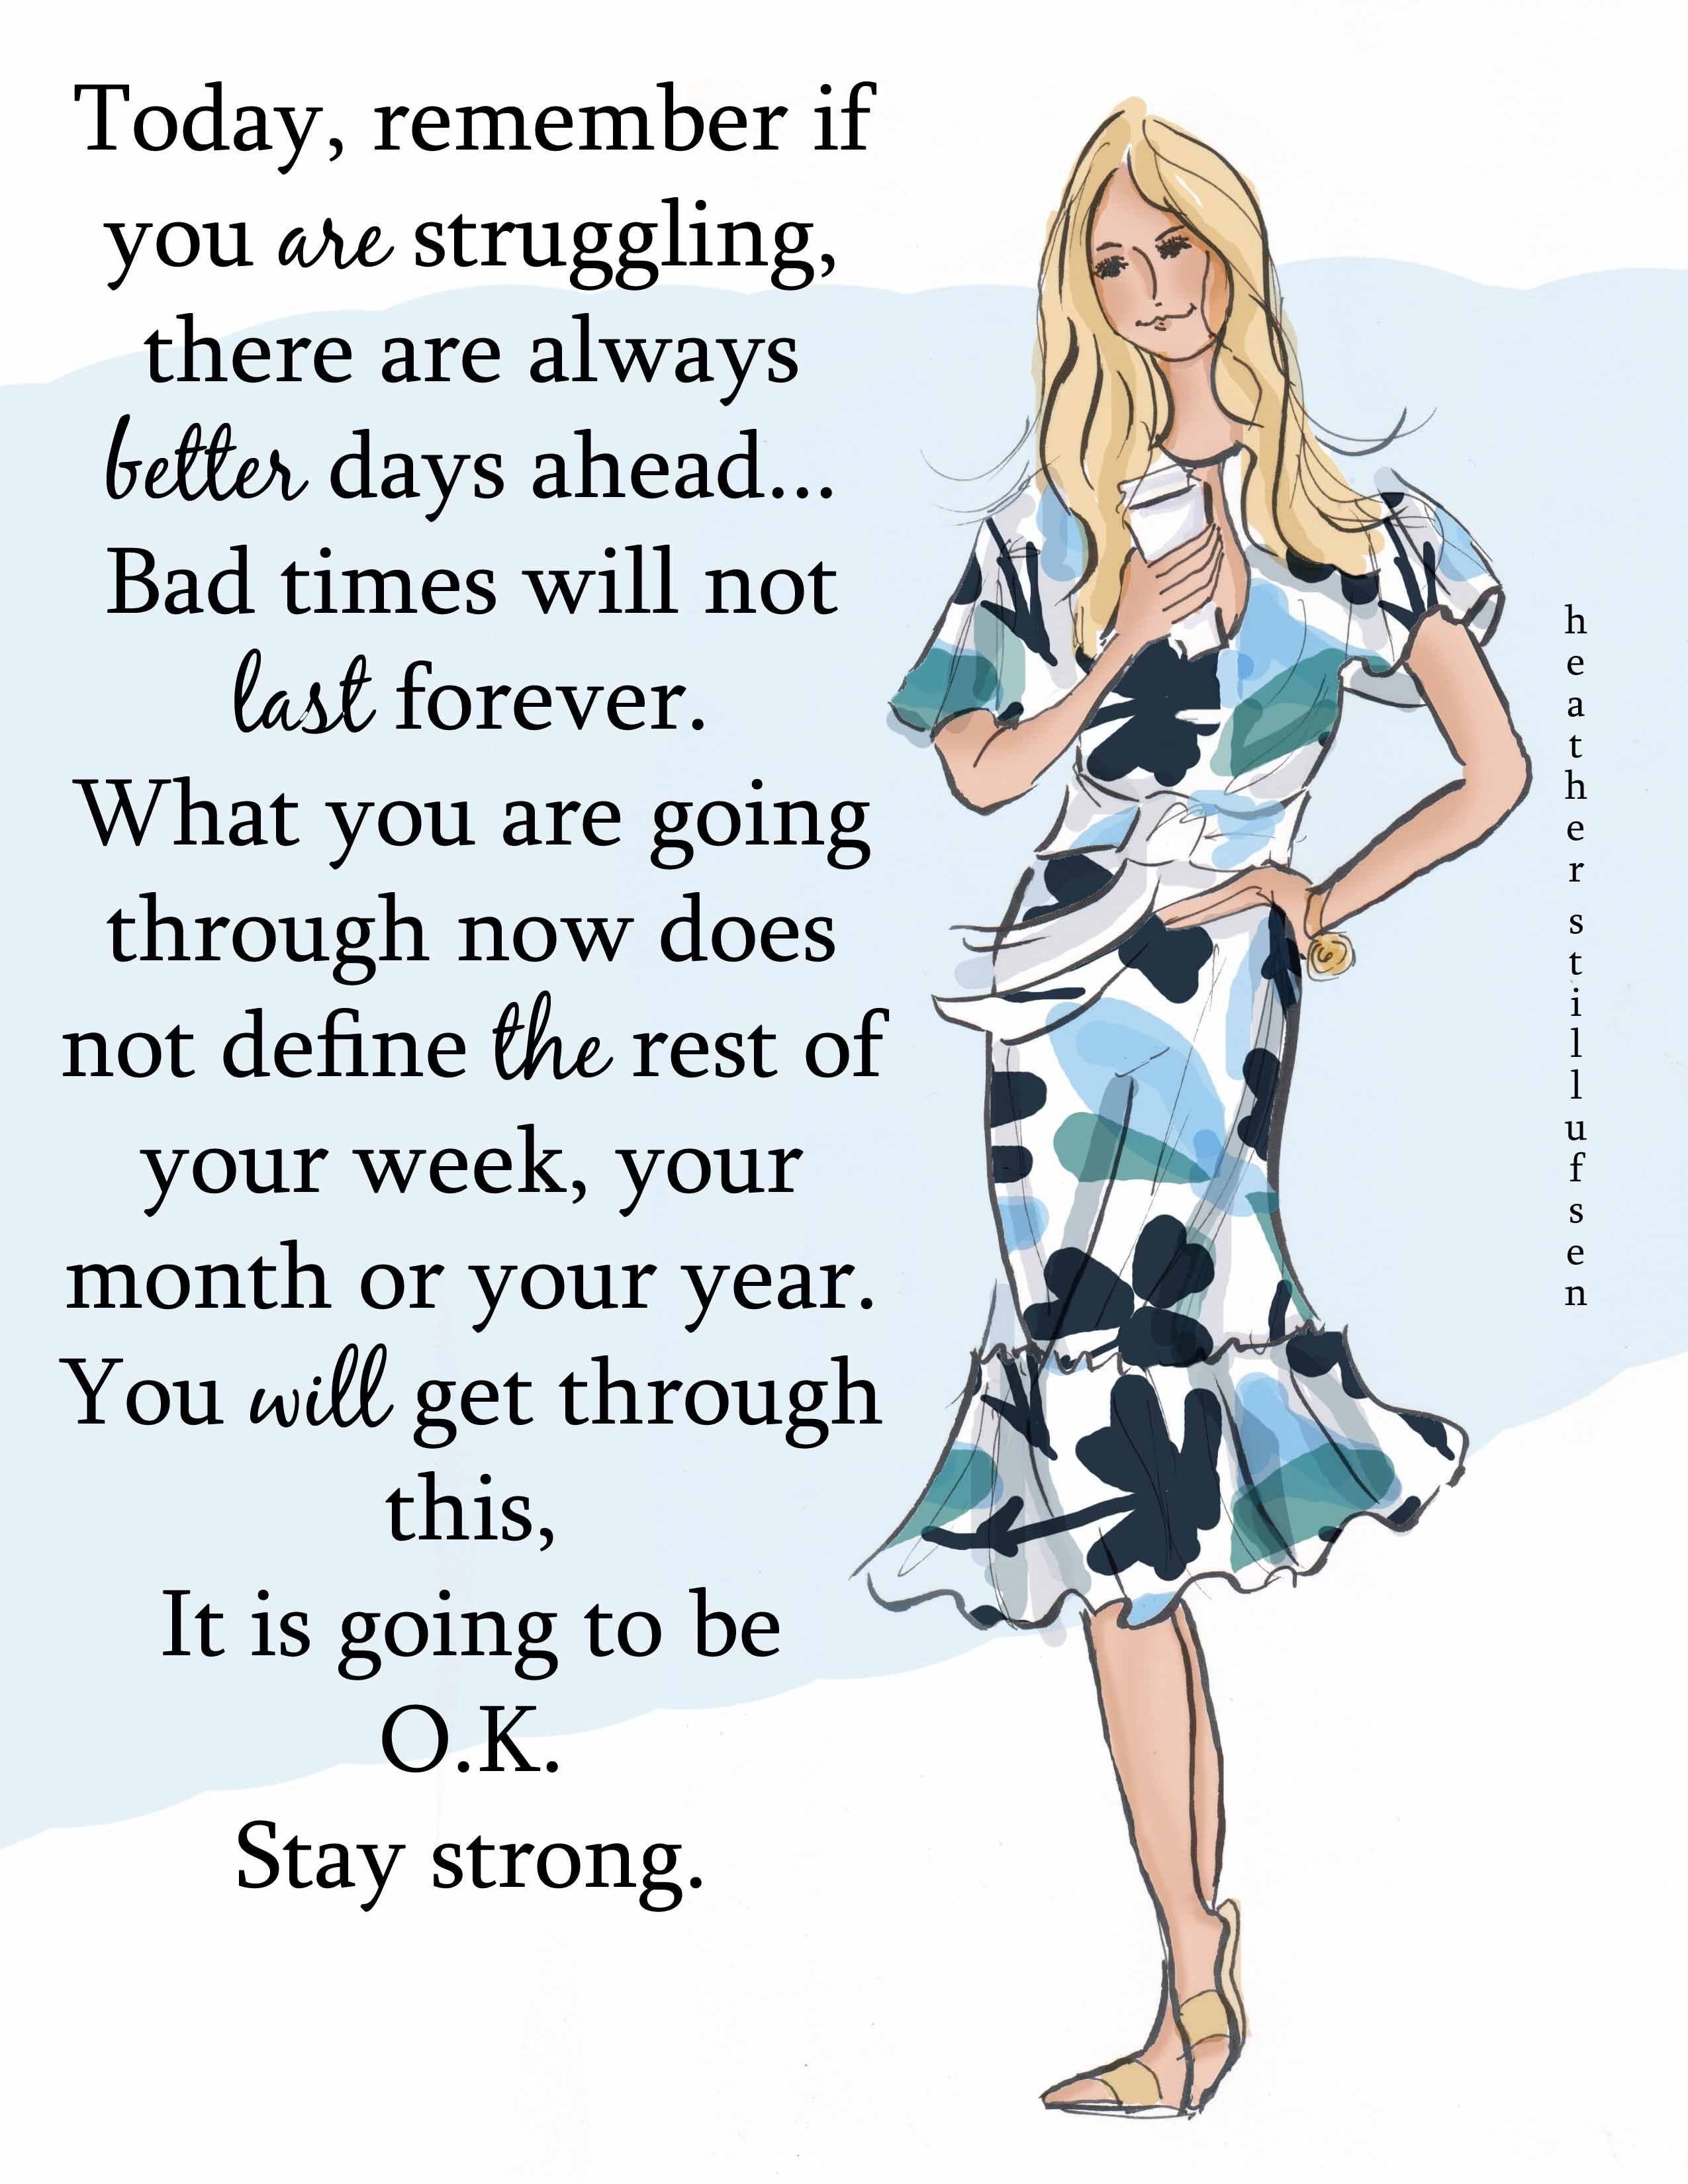 There Will Always Be Better Days Ahead And Days Right In Front Of You Heather Stillufsen Quotes Heather Stillufsen Positive Quotes For Women